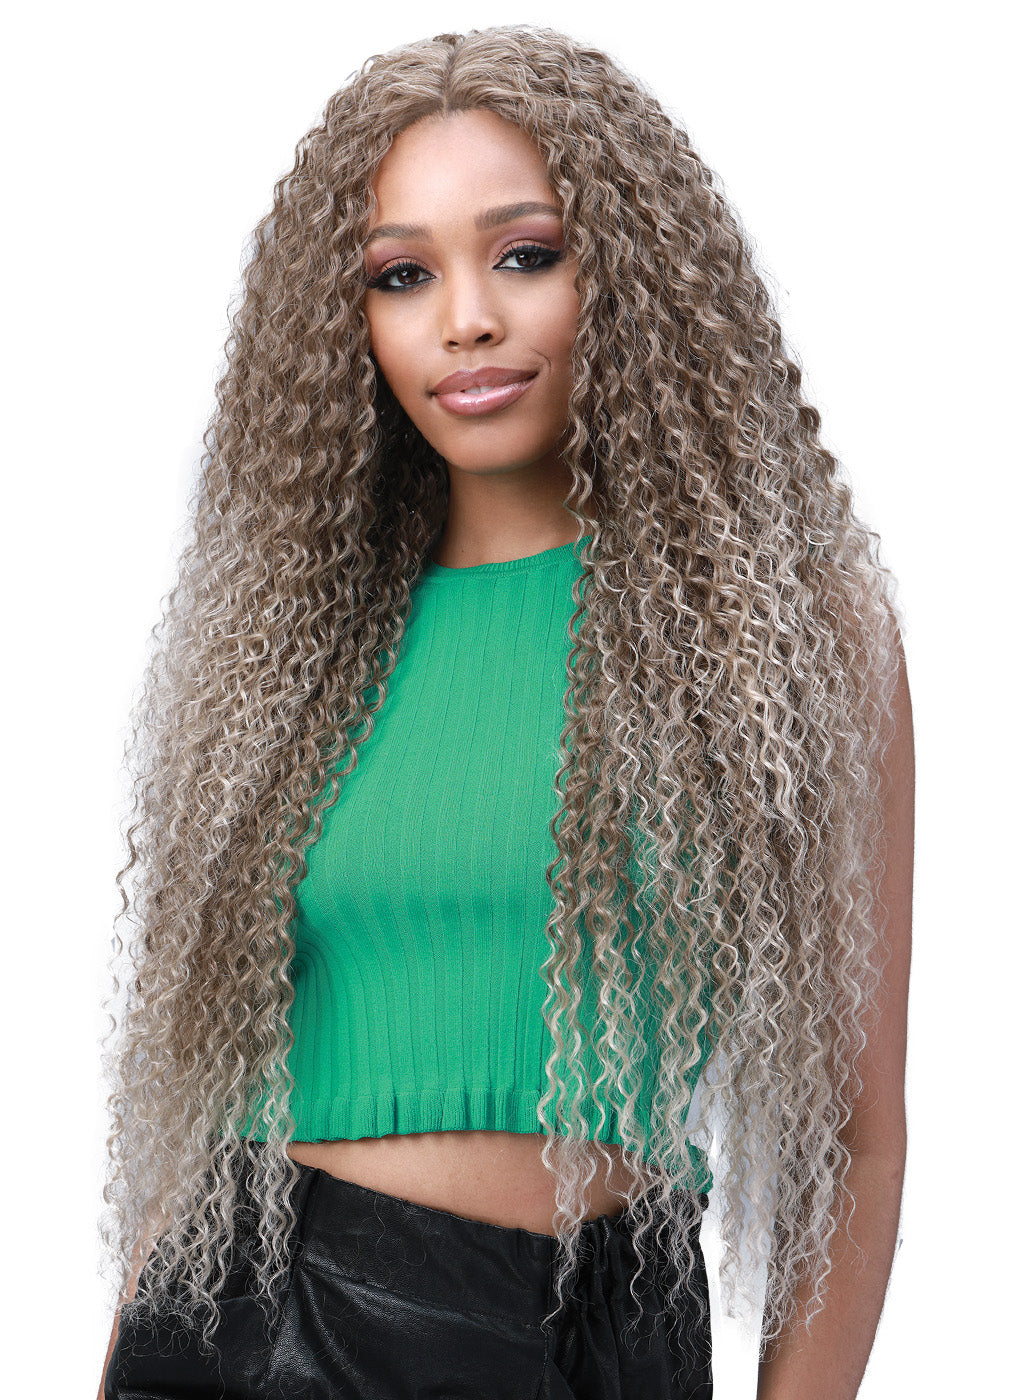 Bobbi Boss Human Hair Blend 13X6 Frontal Lace Wig MOGLWJE32 JERRY CURL 32